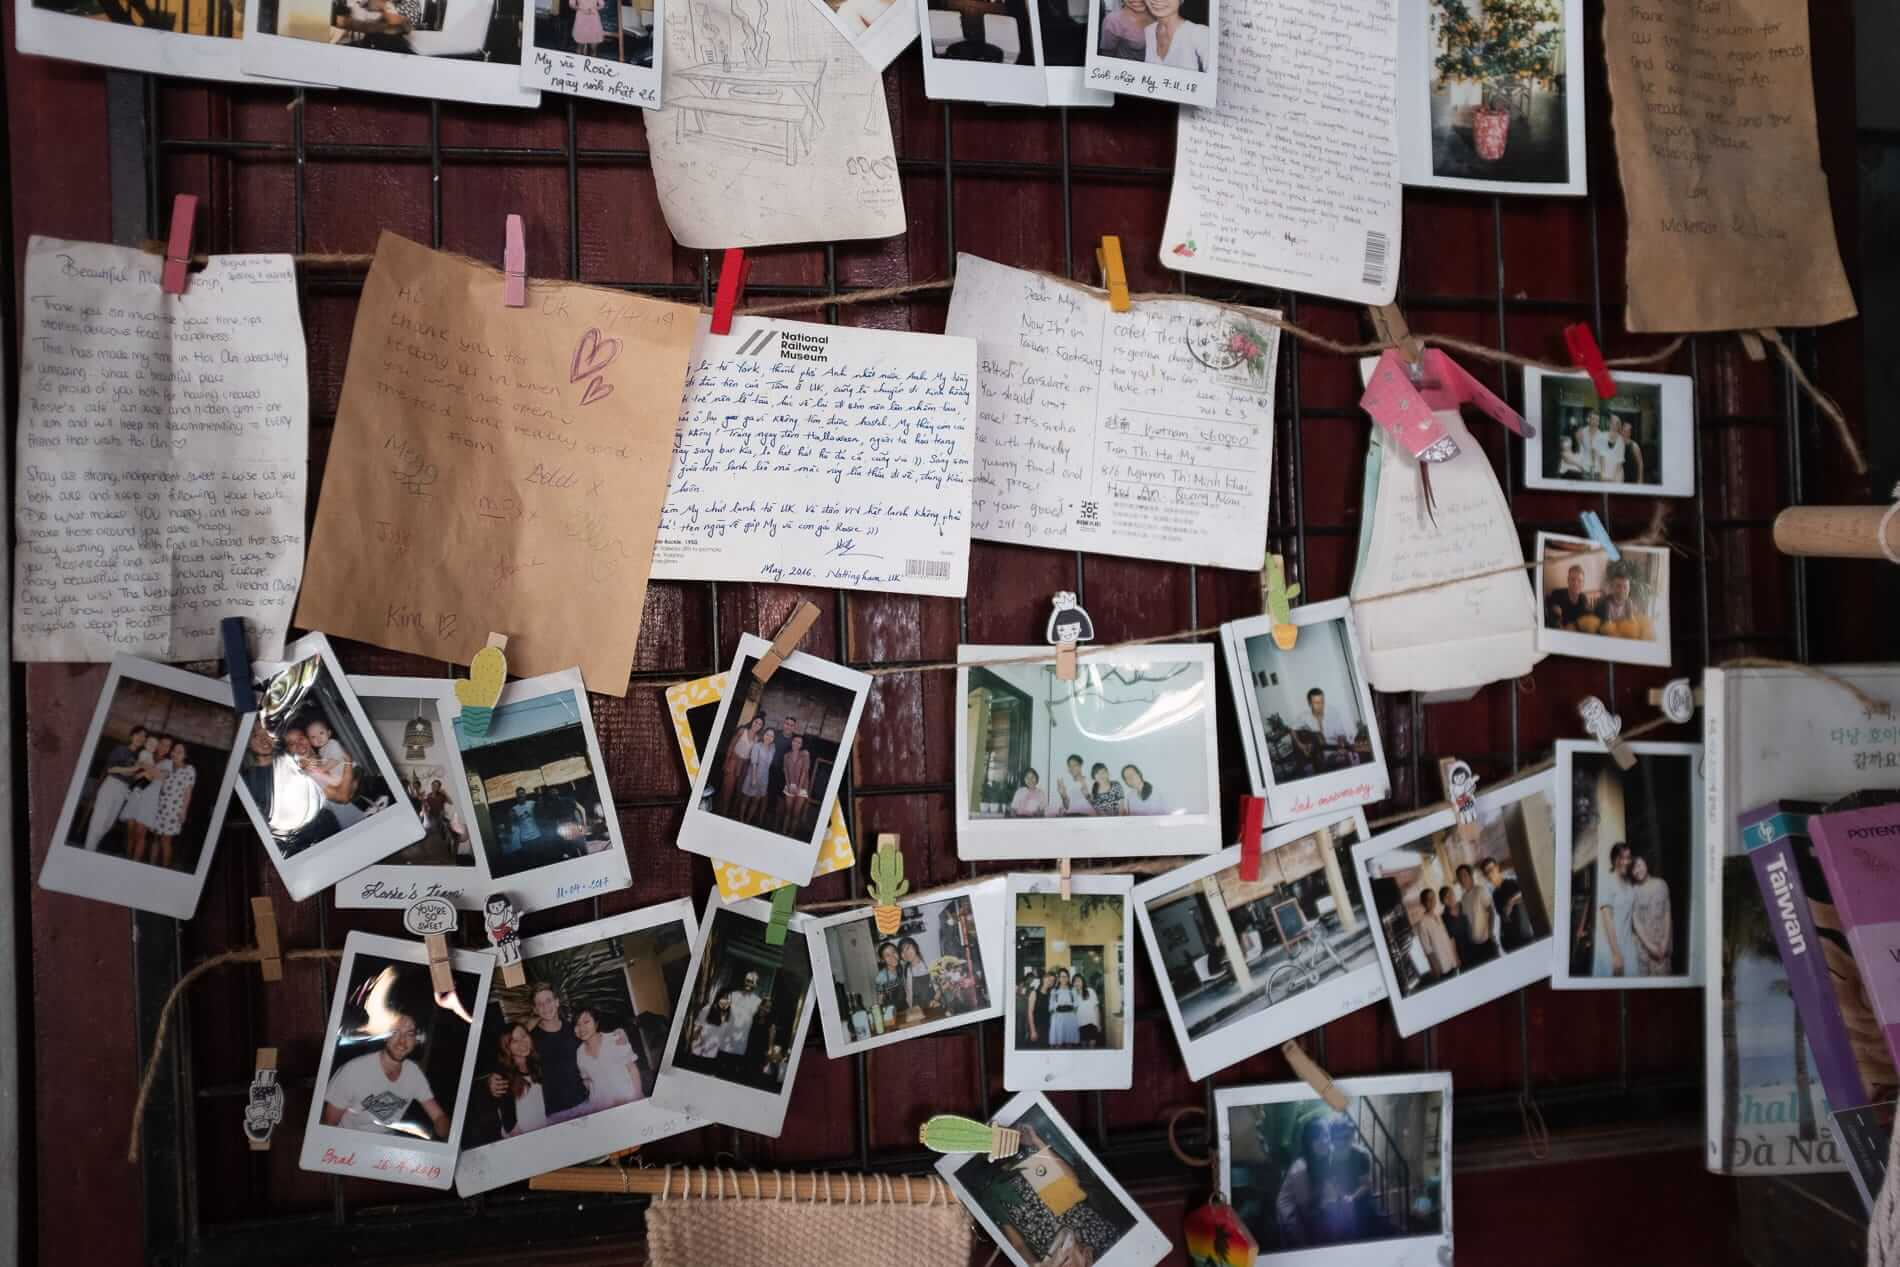 A noticeboard covered with notes and postcards